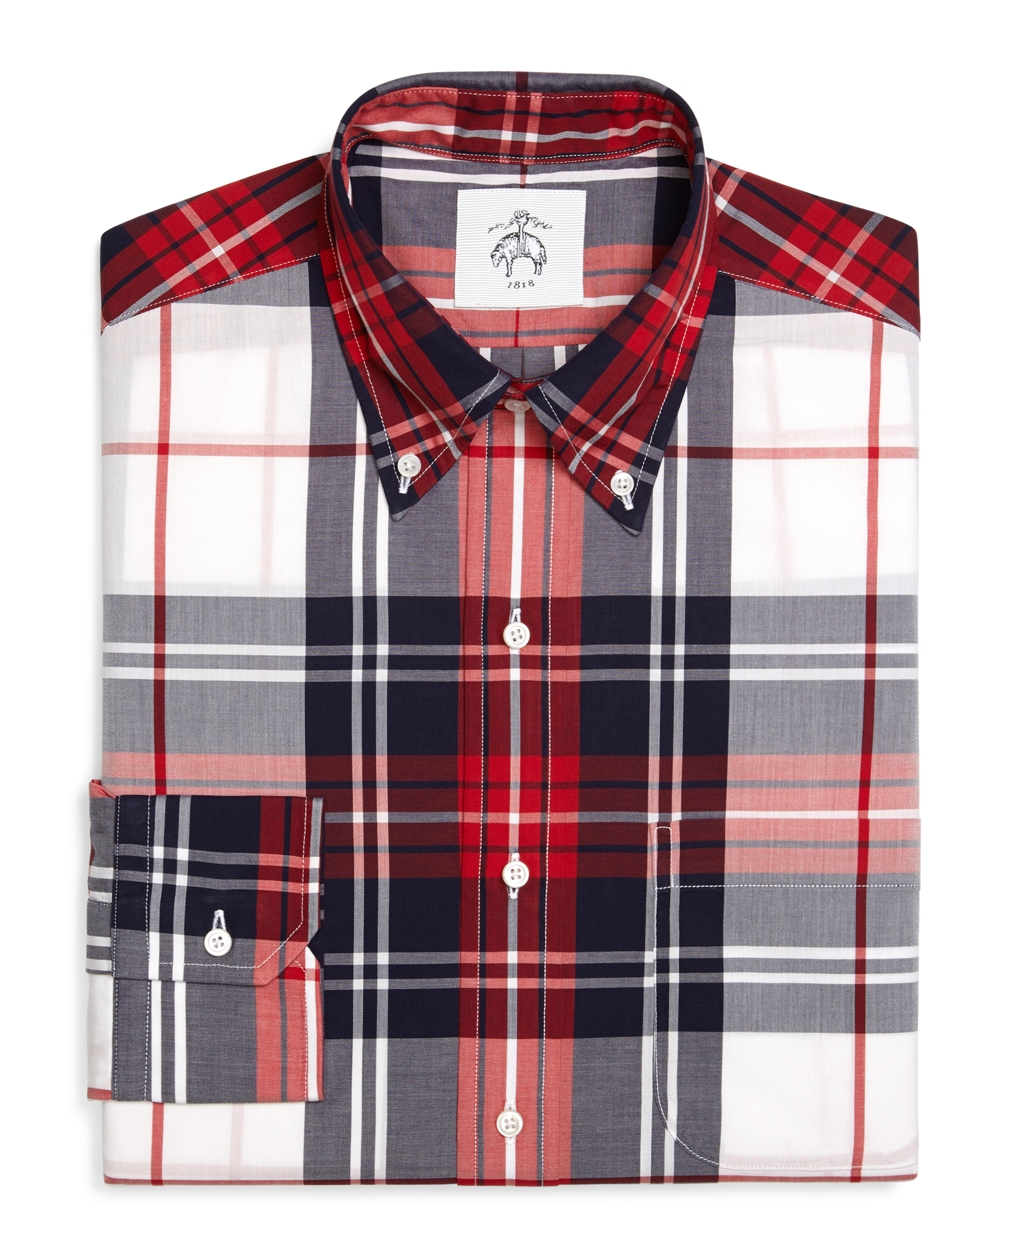 Brooks brothers plaid oxford button down shirt in red for for Red and white button down shirt